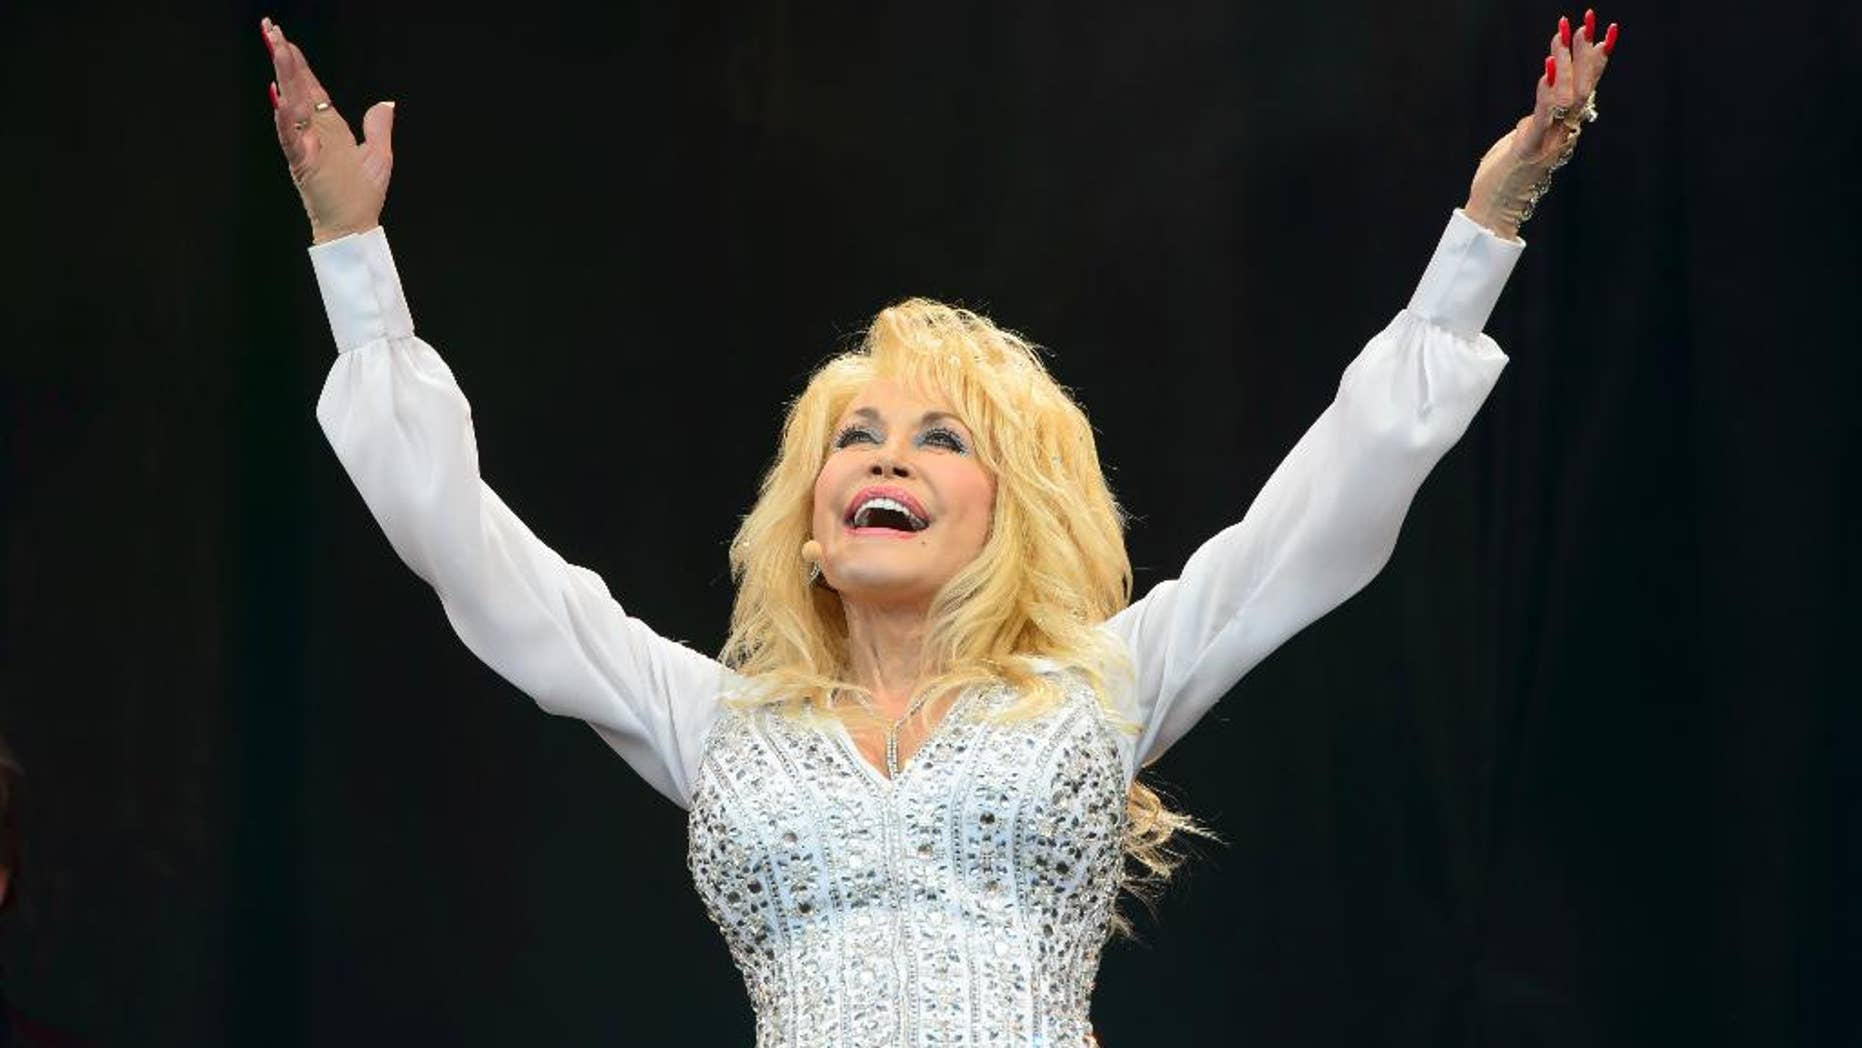 """FILE - In this Sunday, June 29, 2014 file photo, U.S singer Dolly Parton performs at Glastonbury music festival, England. Dolly Parton wants to take an unlikely fan home with her. Dolly"""" the dog was found abandoned at Britain's Glastonbury music festival in one of the thousands of tents which spring up every year at the countryside festival, famous for rain and mud as much as its star performers.  After Parton wowed more than 150,000 people she heard about the dog with the fluffy white coat and offered to adopt it. """"I will take the dog home to America if nobody claims her,"""" she said in a statement Sunday, July 6, 2014.  (Photo by Jonathan Short/Invision/AP, File)"""